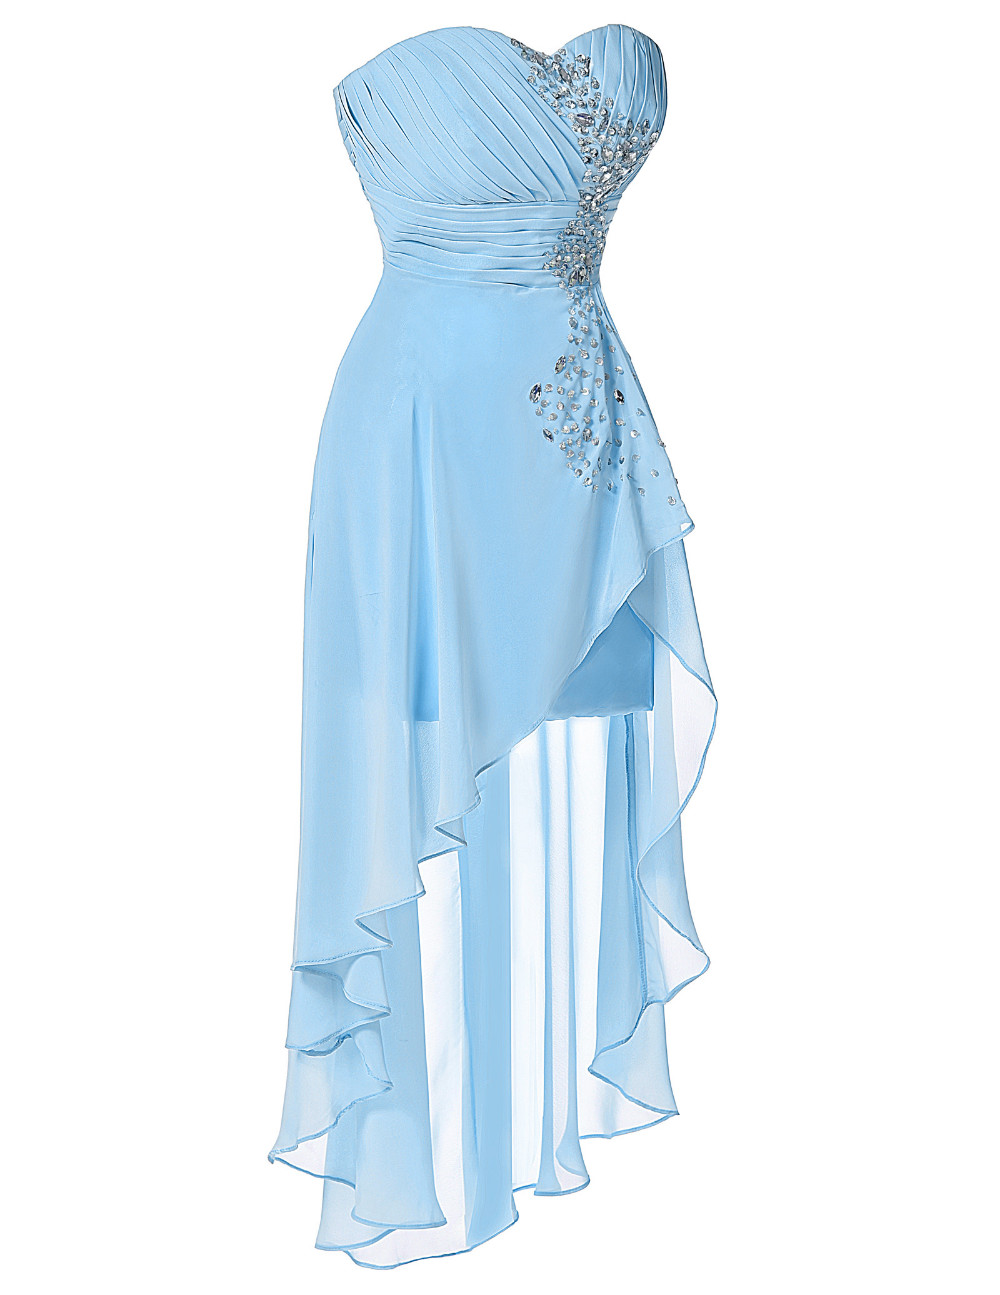 High Low Bridesmaid Dress 2017 Short Front Long Back Prom Gown Strapless Bead Sequin Pink Turquoise Bridesmaid Dress Grace Karin 13